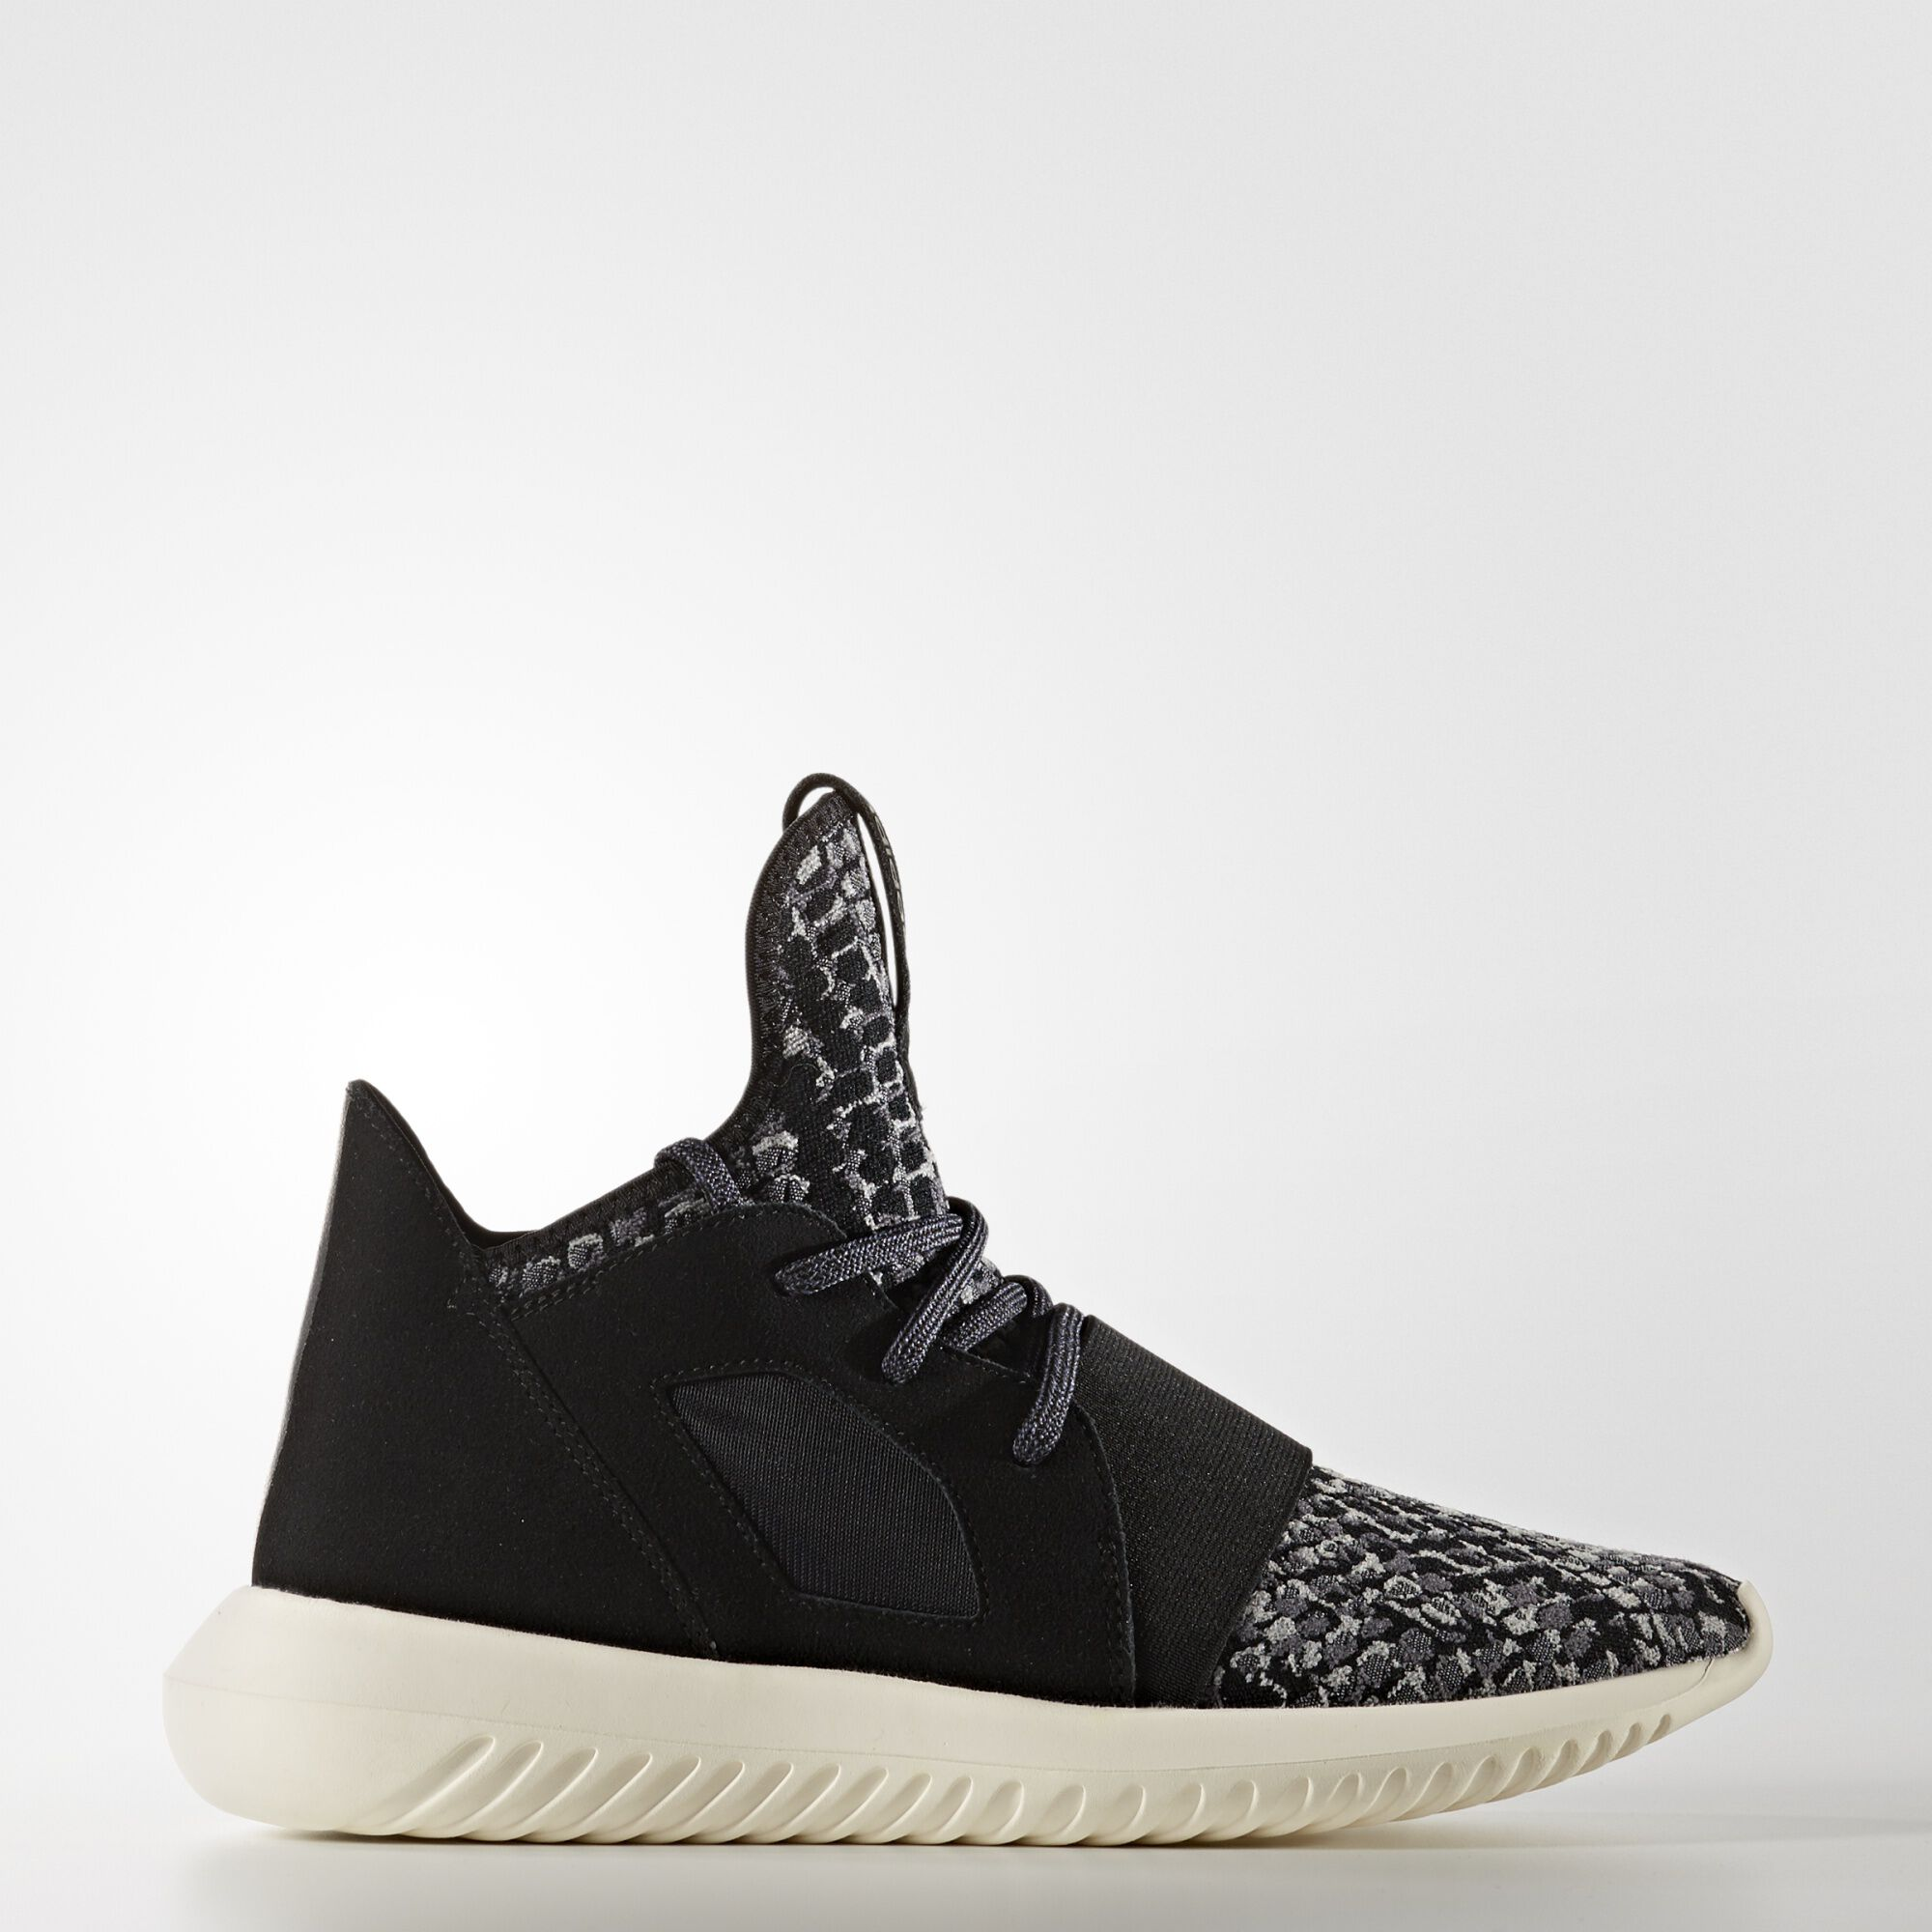 Adidas Tubular Defiant Triple Black